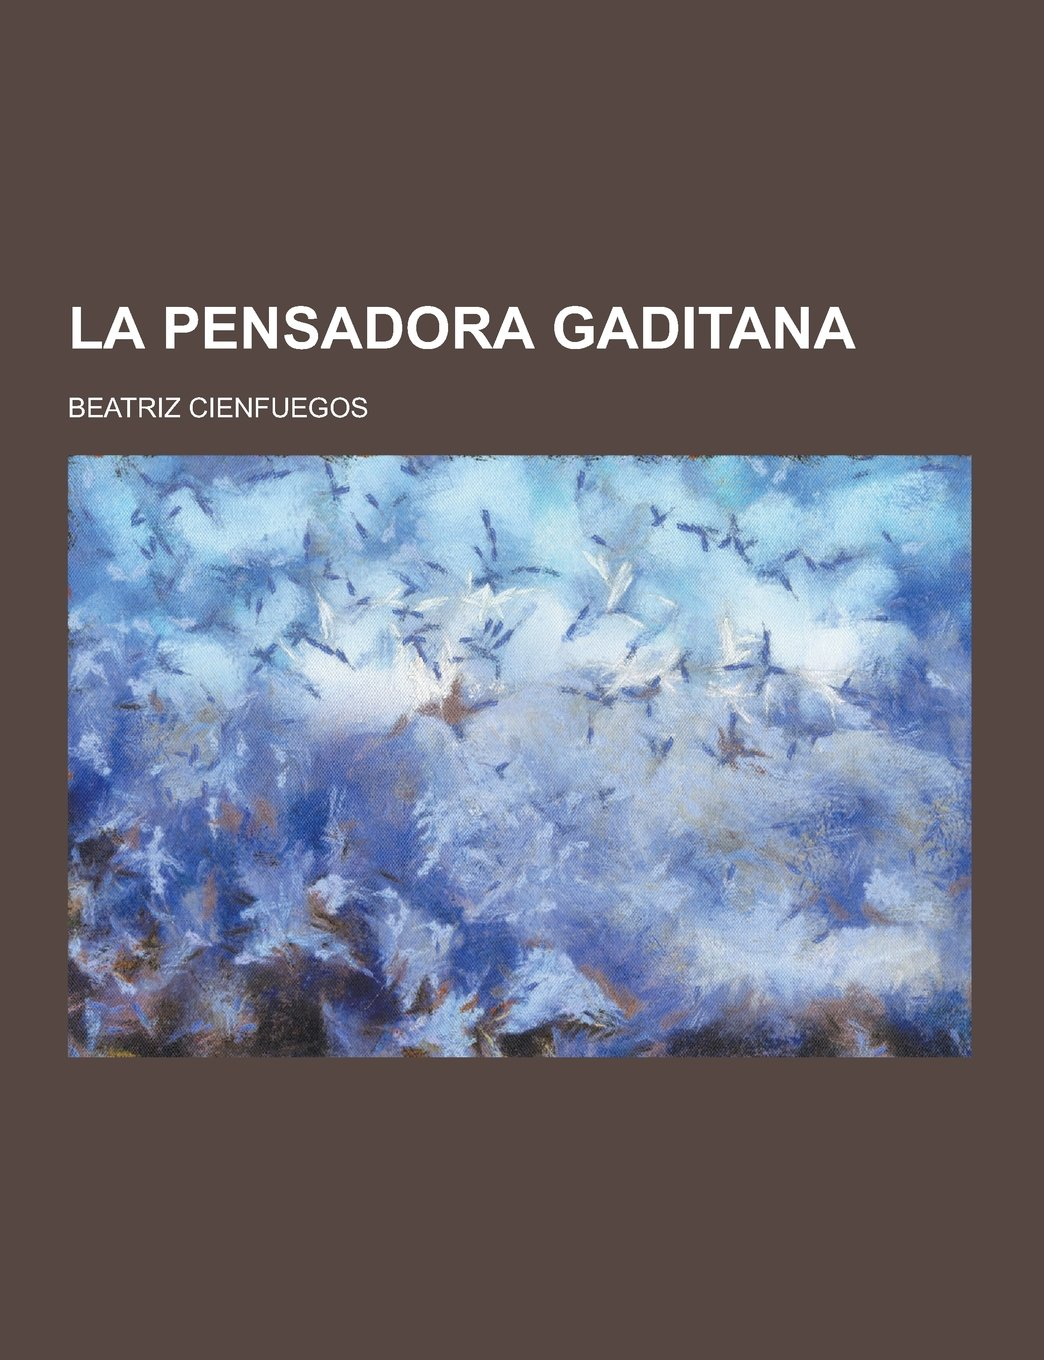 La Pensadora Gaditana (Spanish Edition): Beatriz Cienfuegos: 9781230470771: Amazon.com: Books